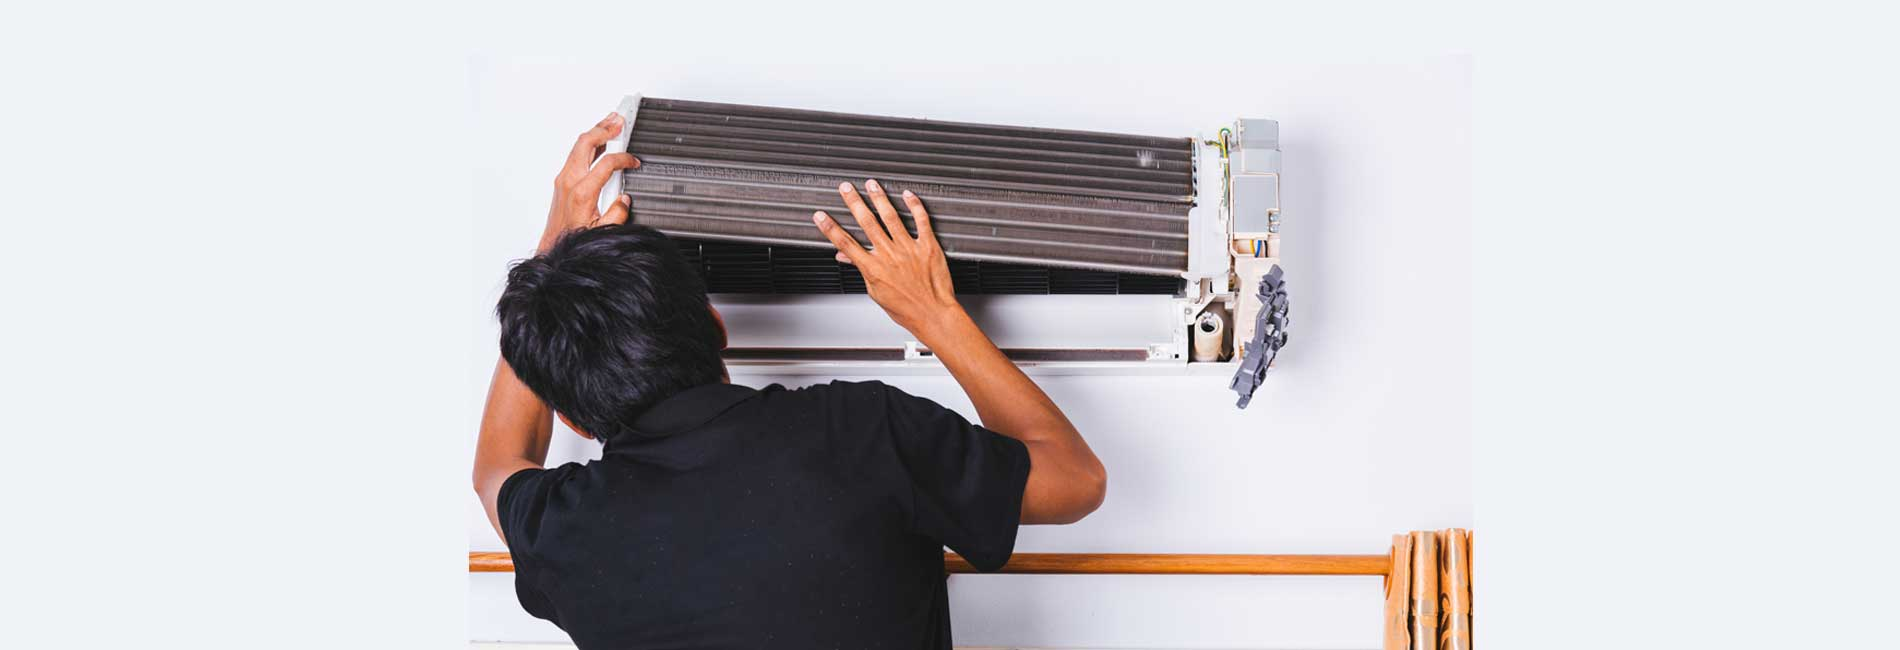 AC Uninstallation in Kattankulathur